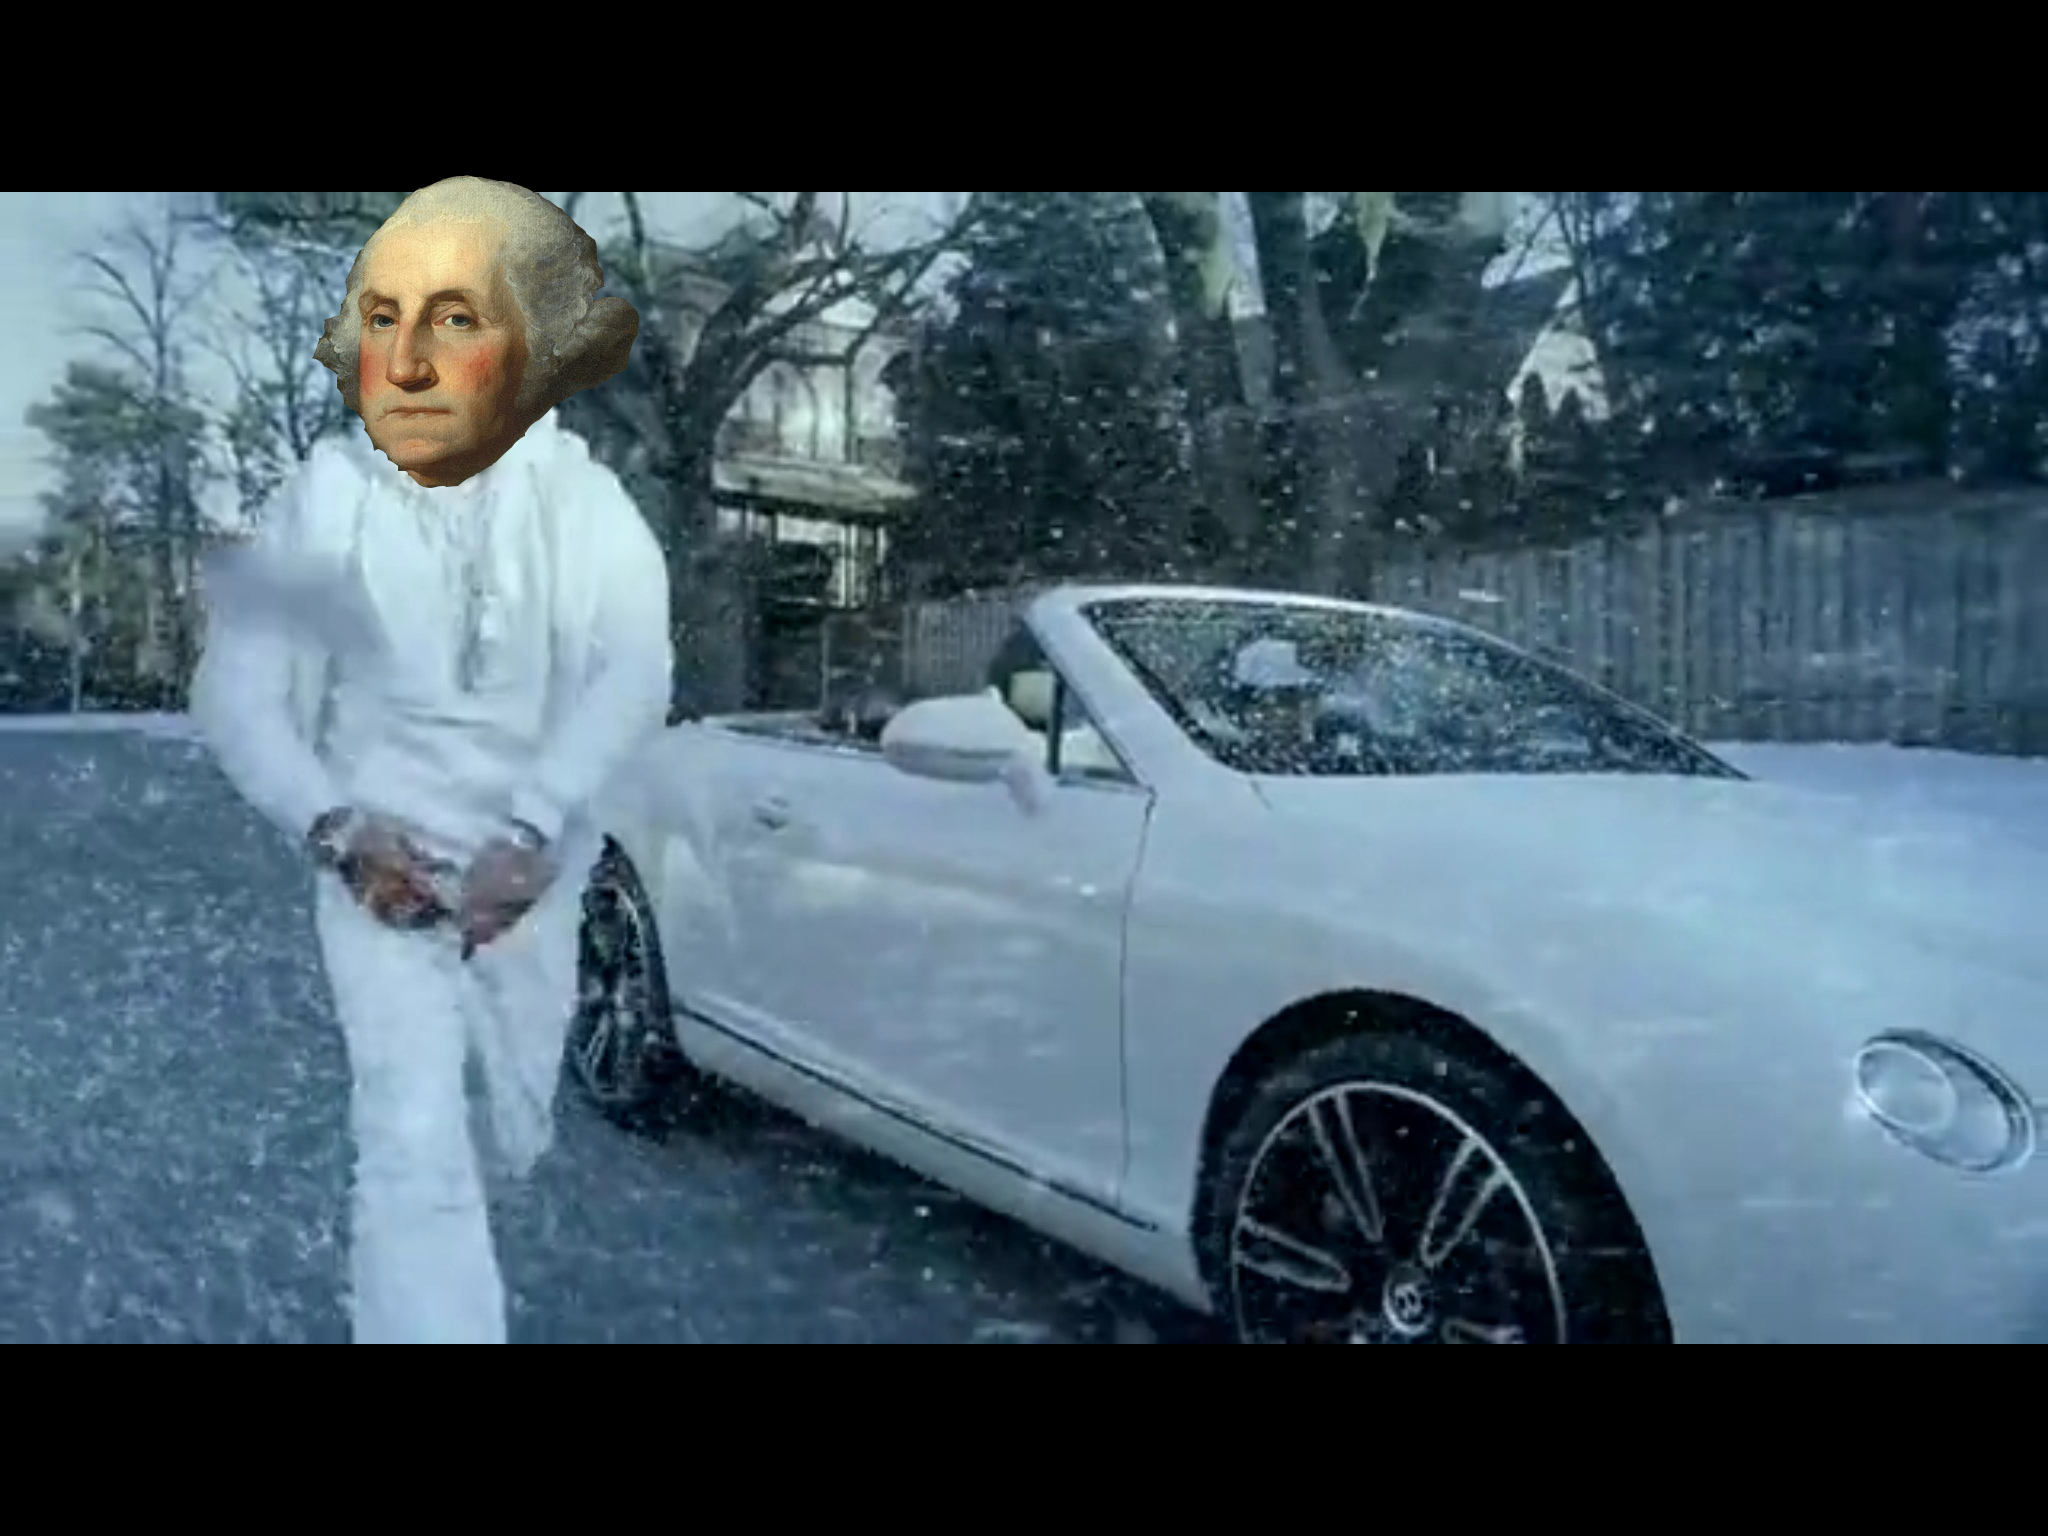 A rare portrait of George Washington touring the 13 colonies with his Bentley.